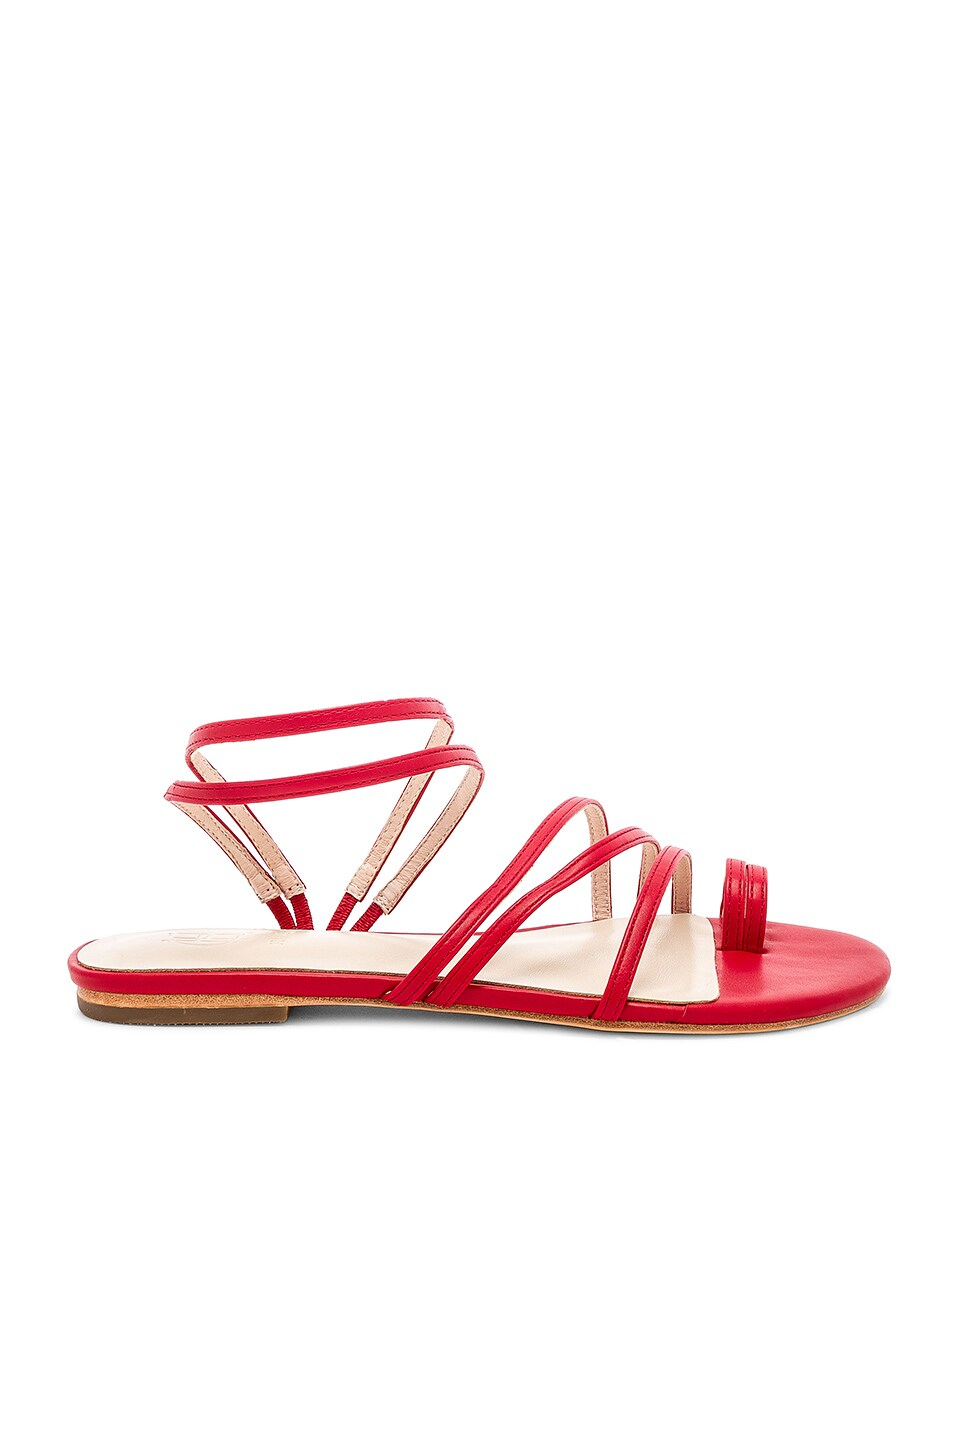 RAYE x House Of Harlow 1960 Glimmer Sandal in Red